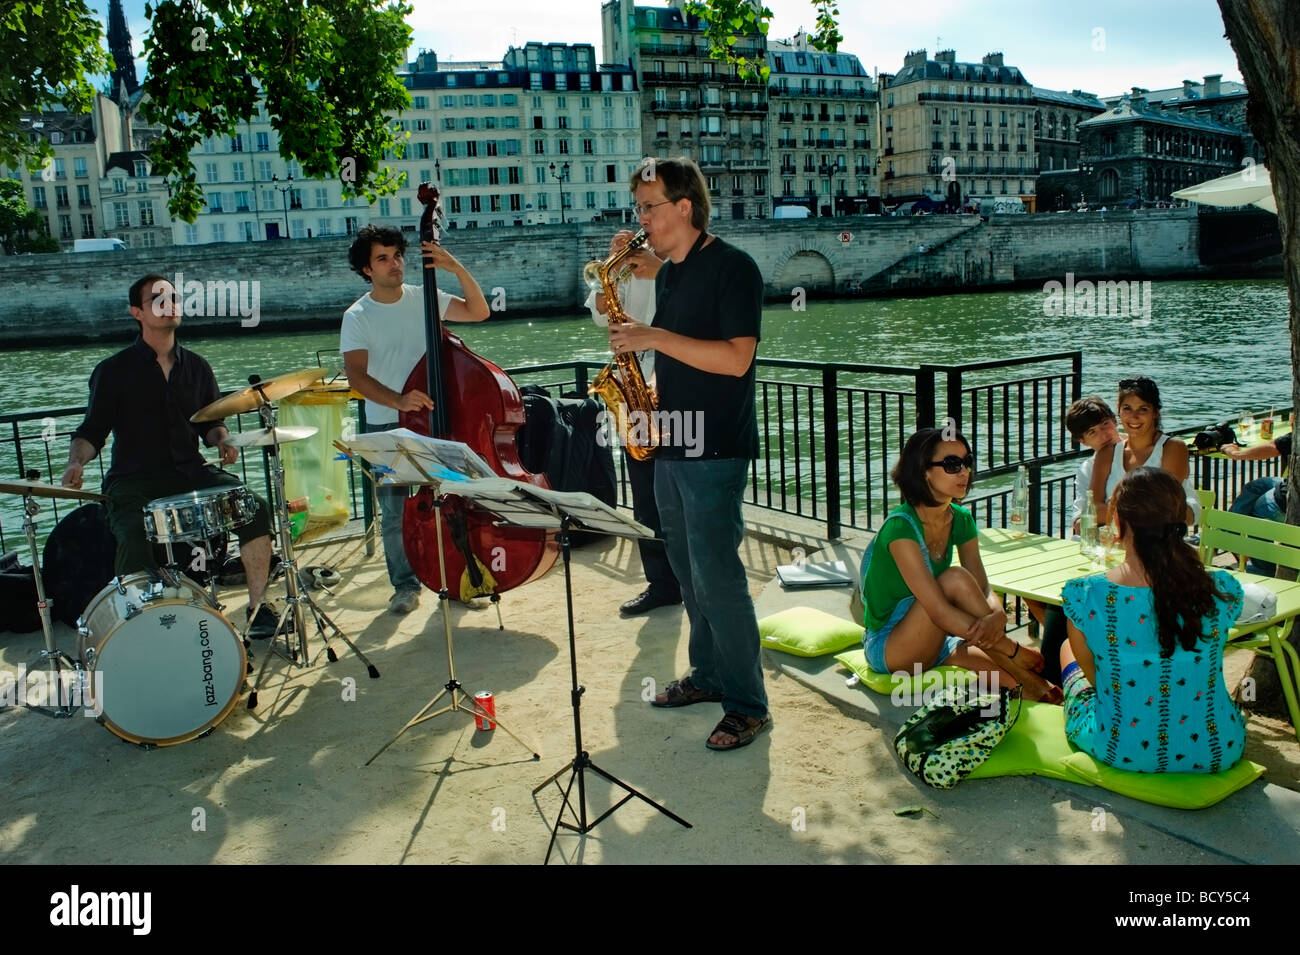 Paris France, Public Events, Free Jazz Band Performing on Seine River Quay at 'Paris Plages' Summer Festival - Stock Image